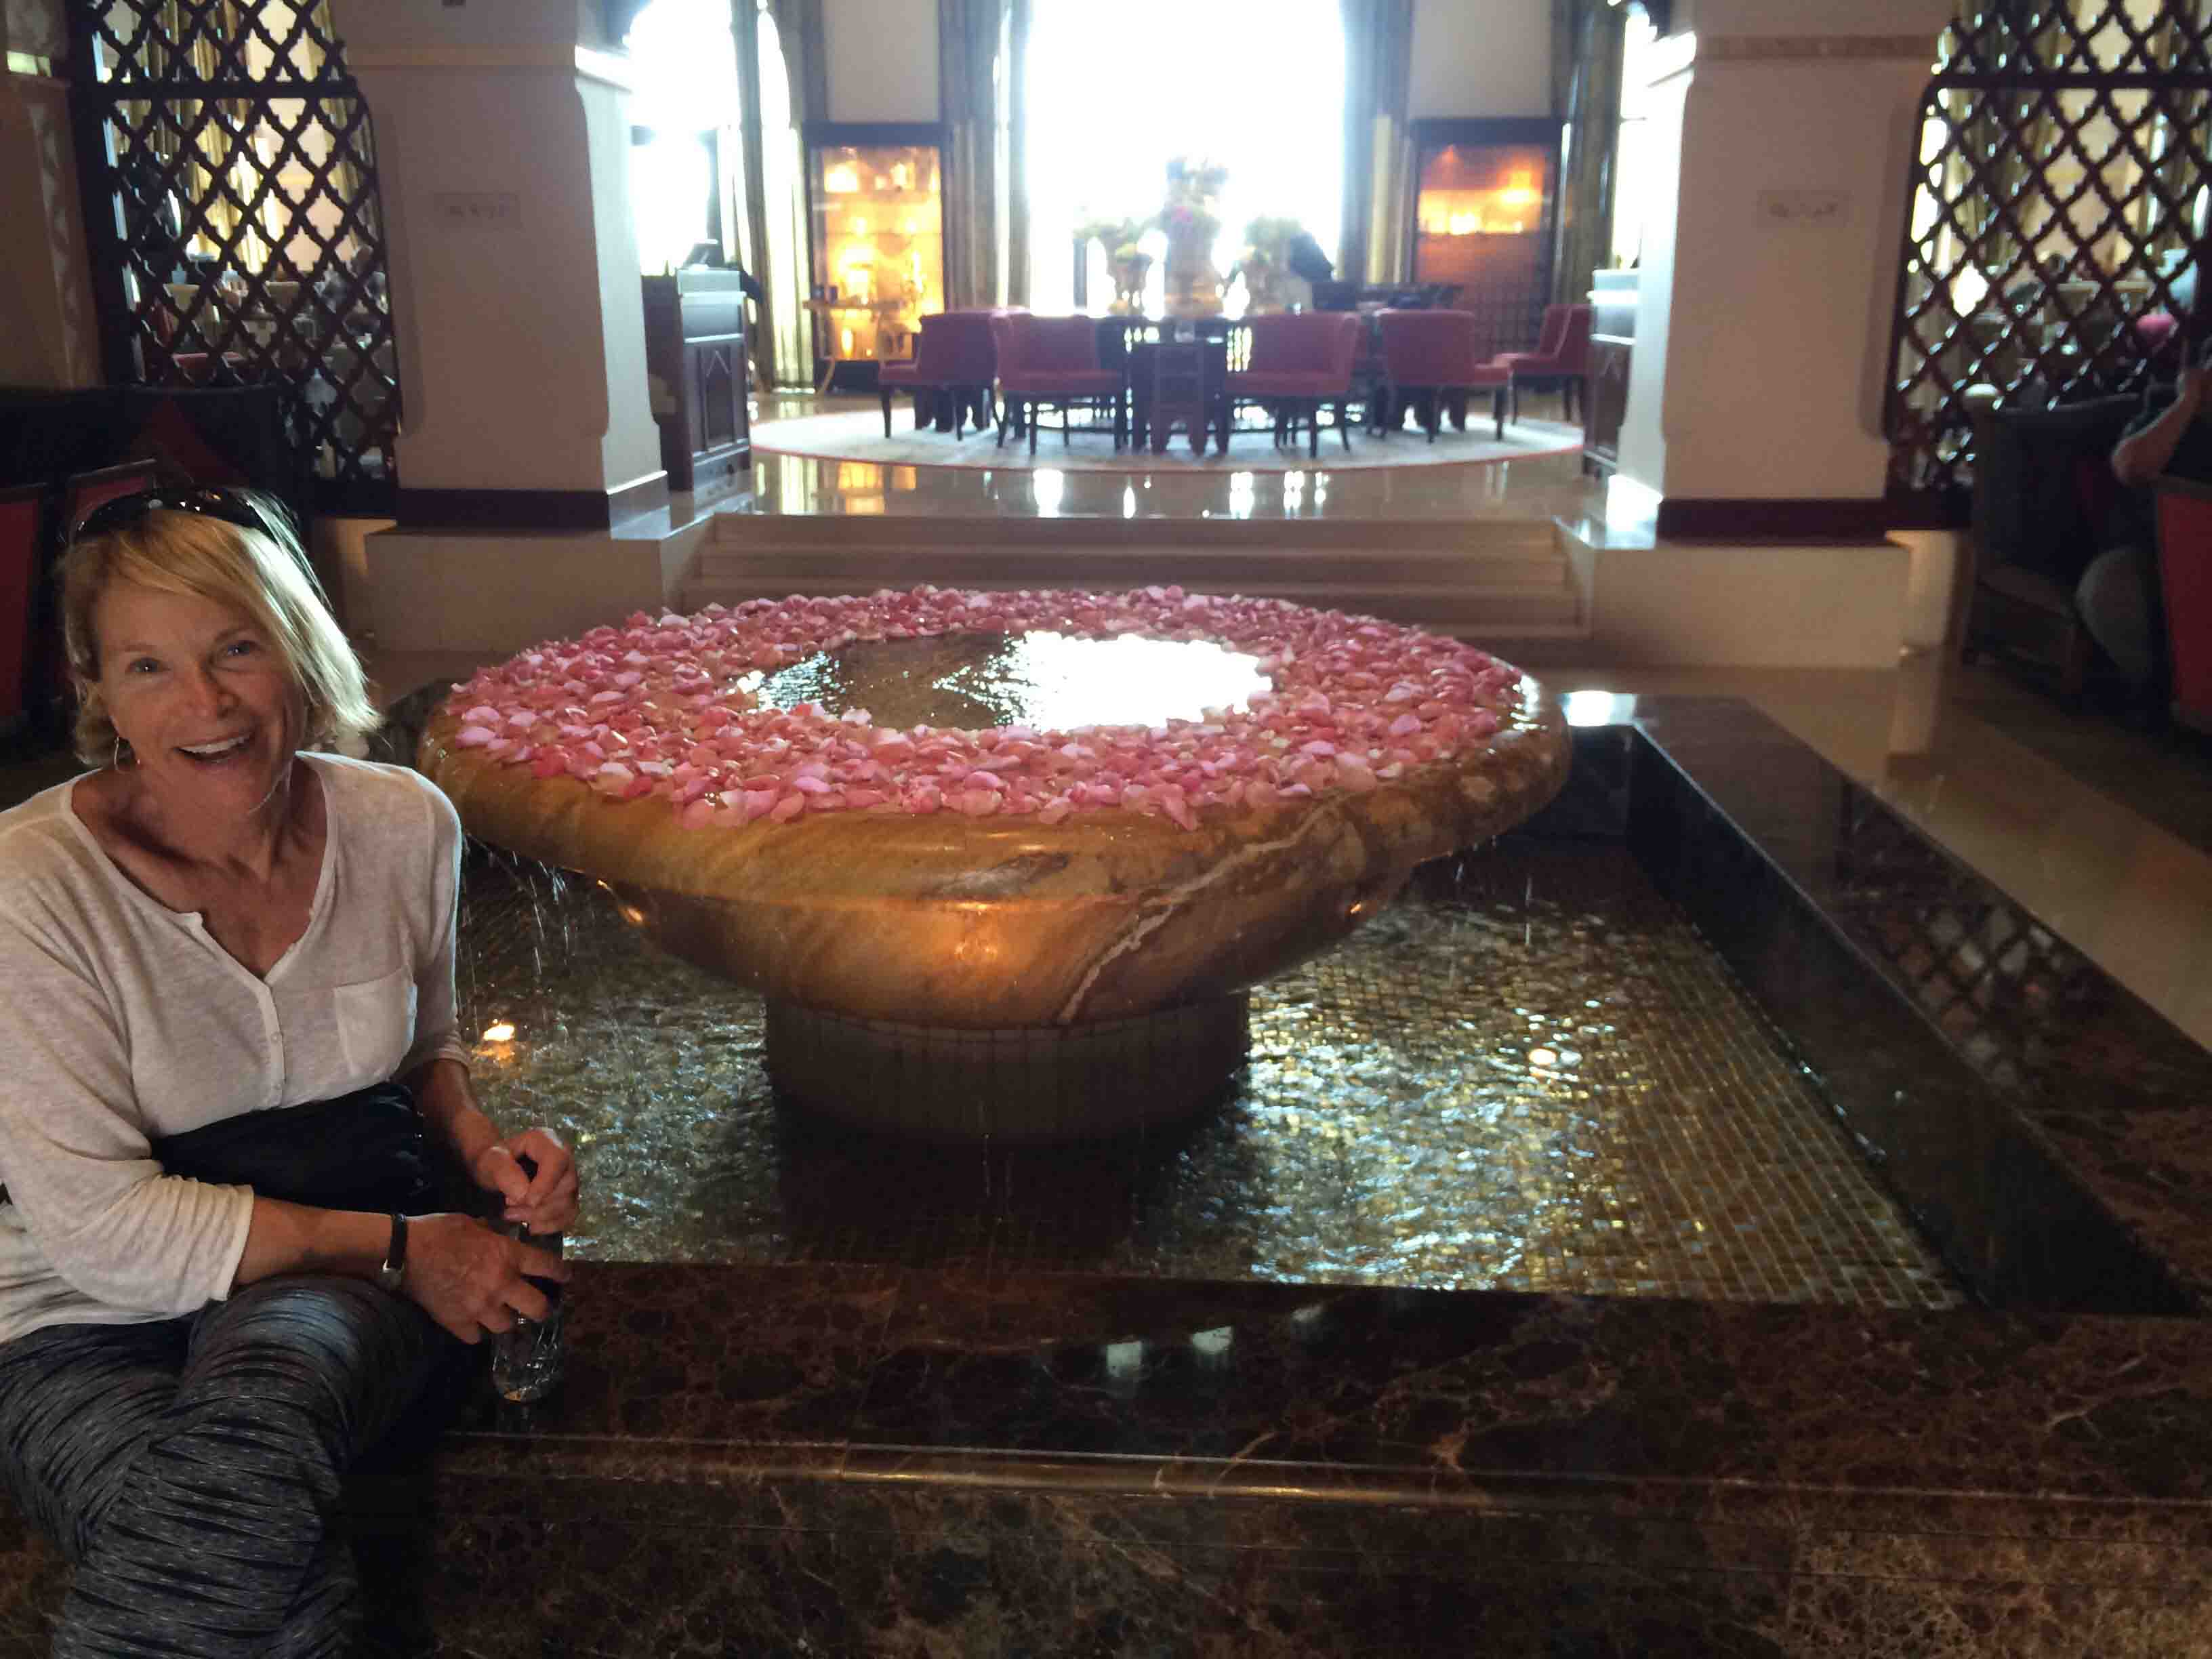 Palace Downtown Dubai lobby